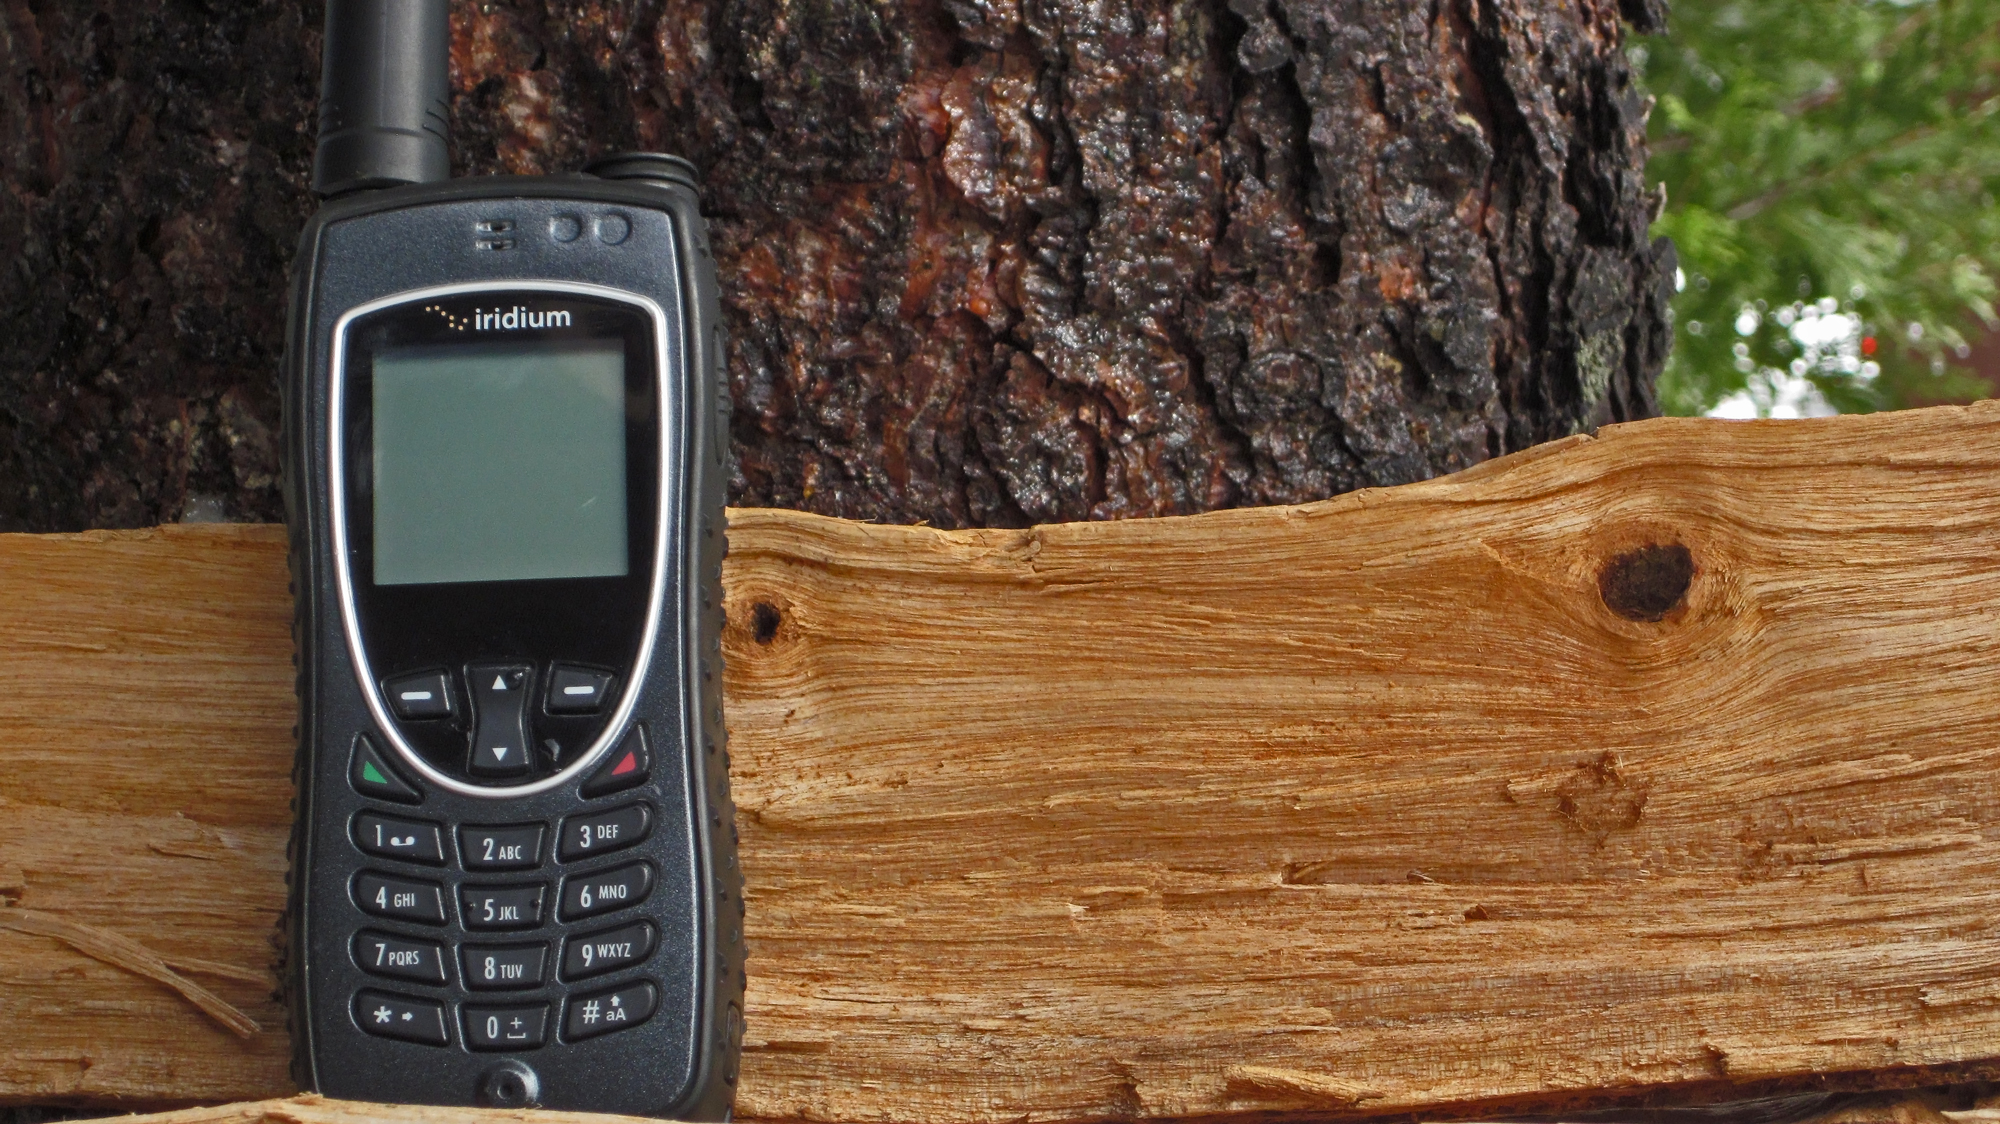 iridium-9575-extreme-satellite-phone-laying-in-a-tree-northernaxcess.jpg